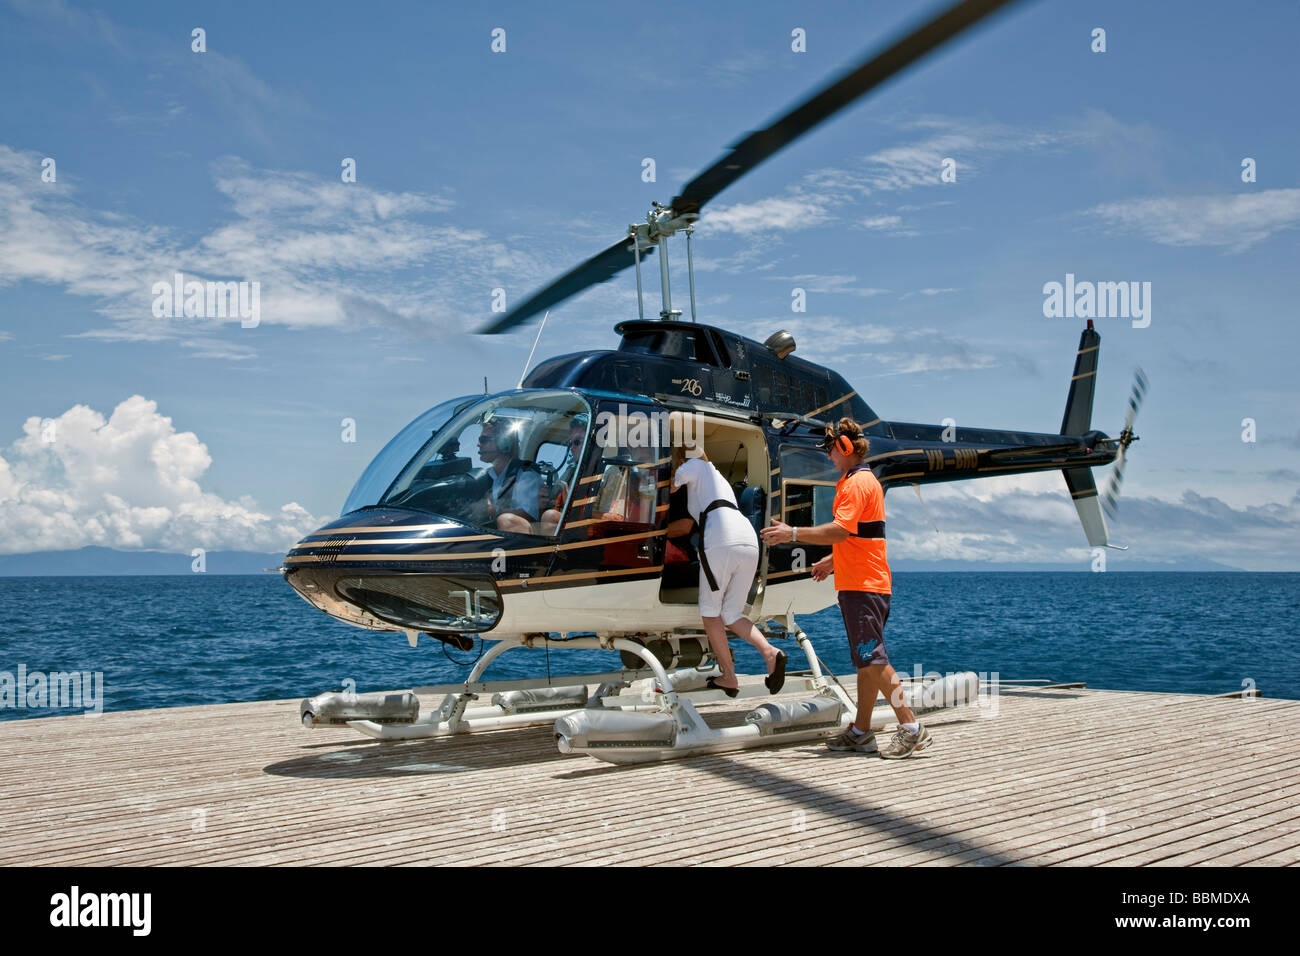 Austrailia, Queensland. A helipad at Agincourt Reef on the Great Barrier Reef where tourists can view the reef form - Stock Image